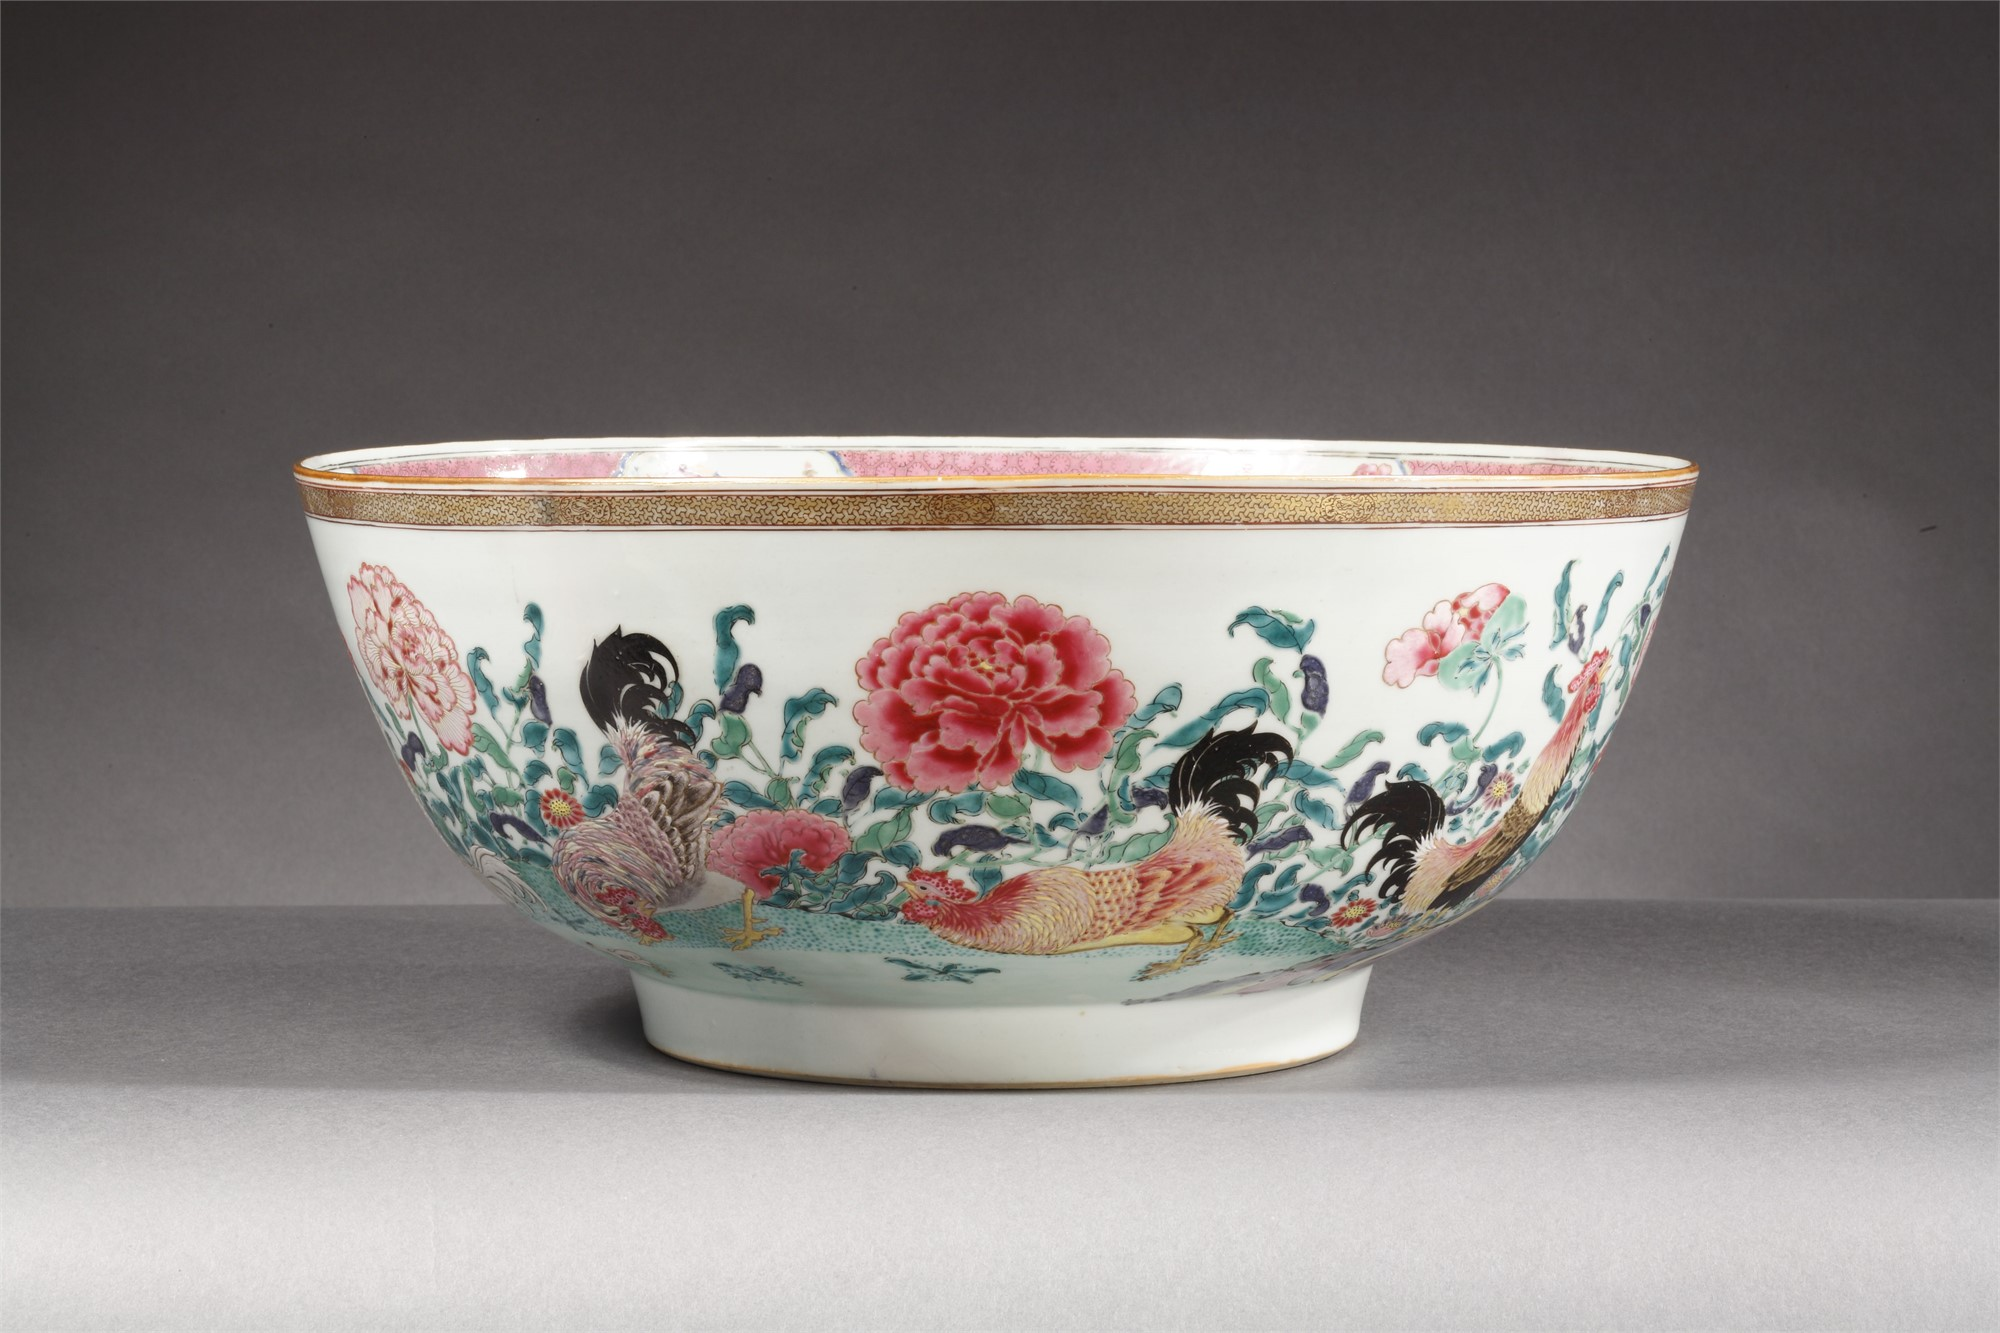 SUPERB EXPORT FAMILLE-ROSE PUNCH BOWL WITH COCKERELS AND PEONIES